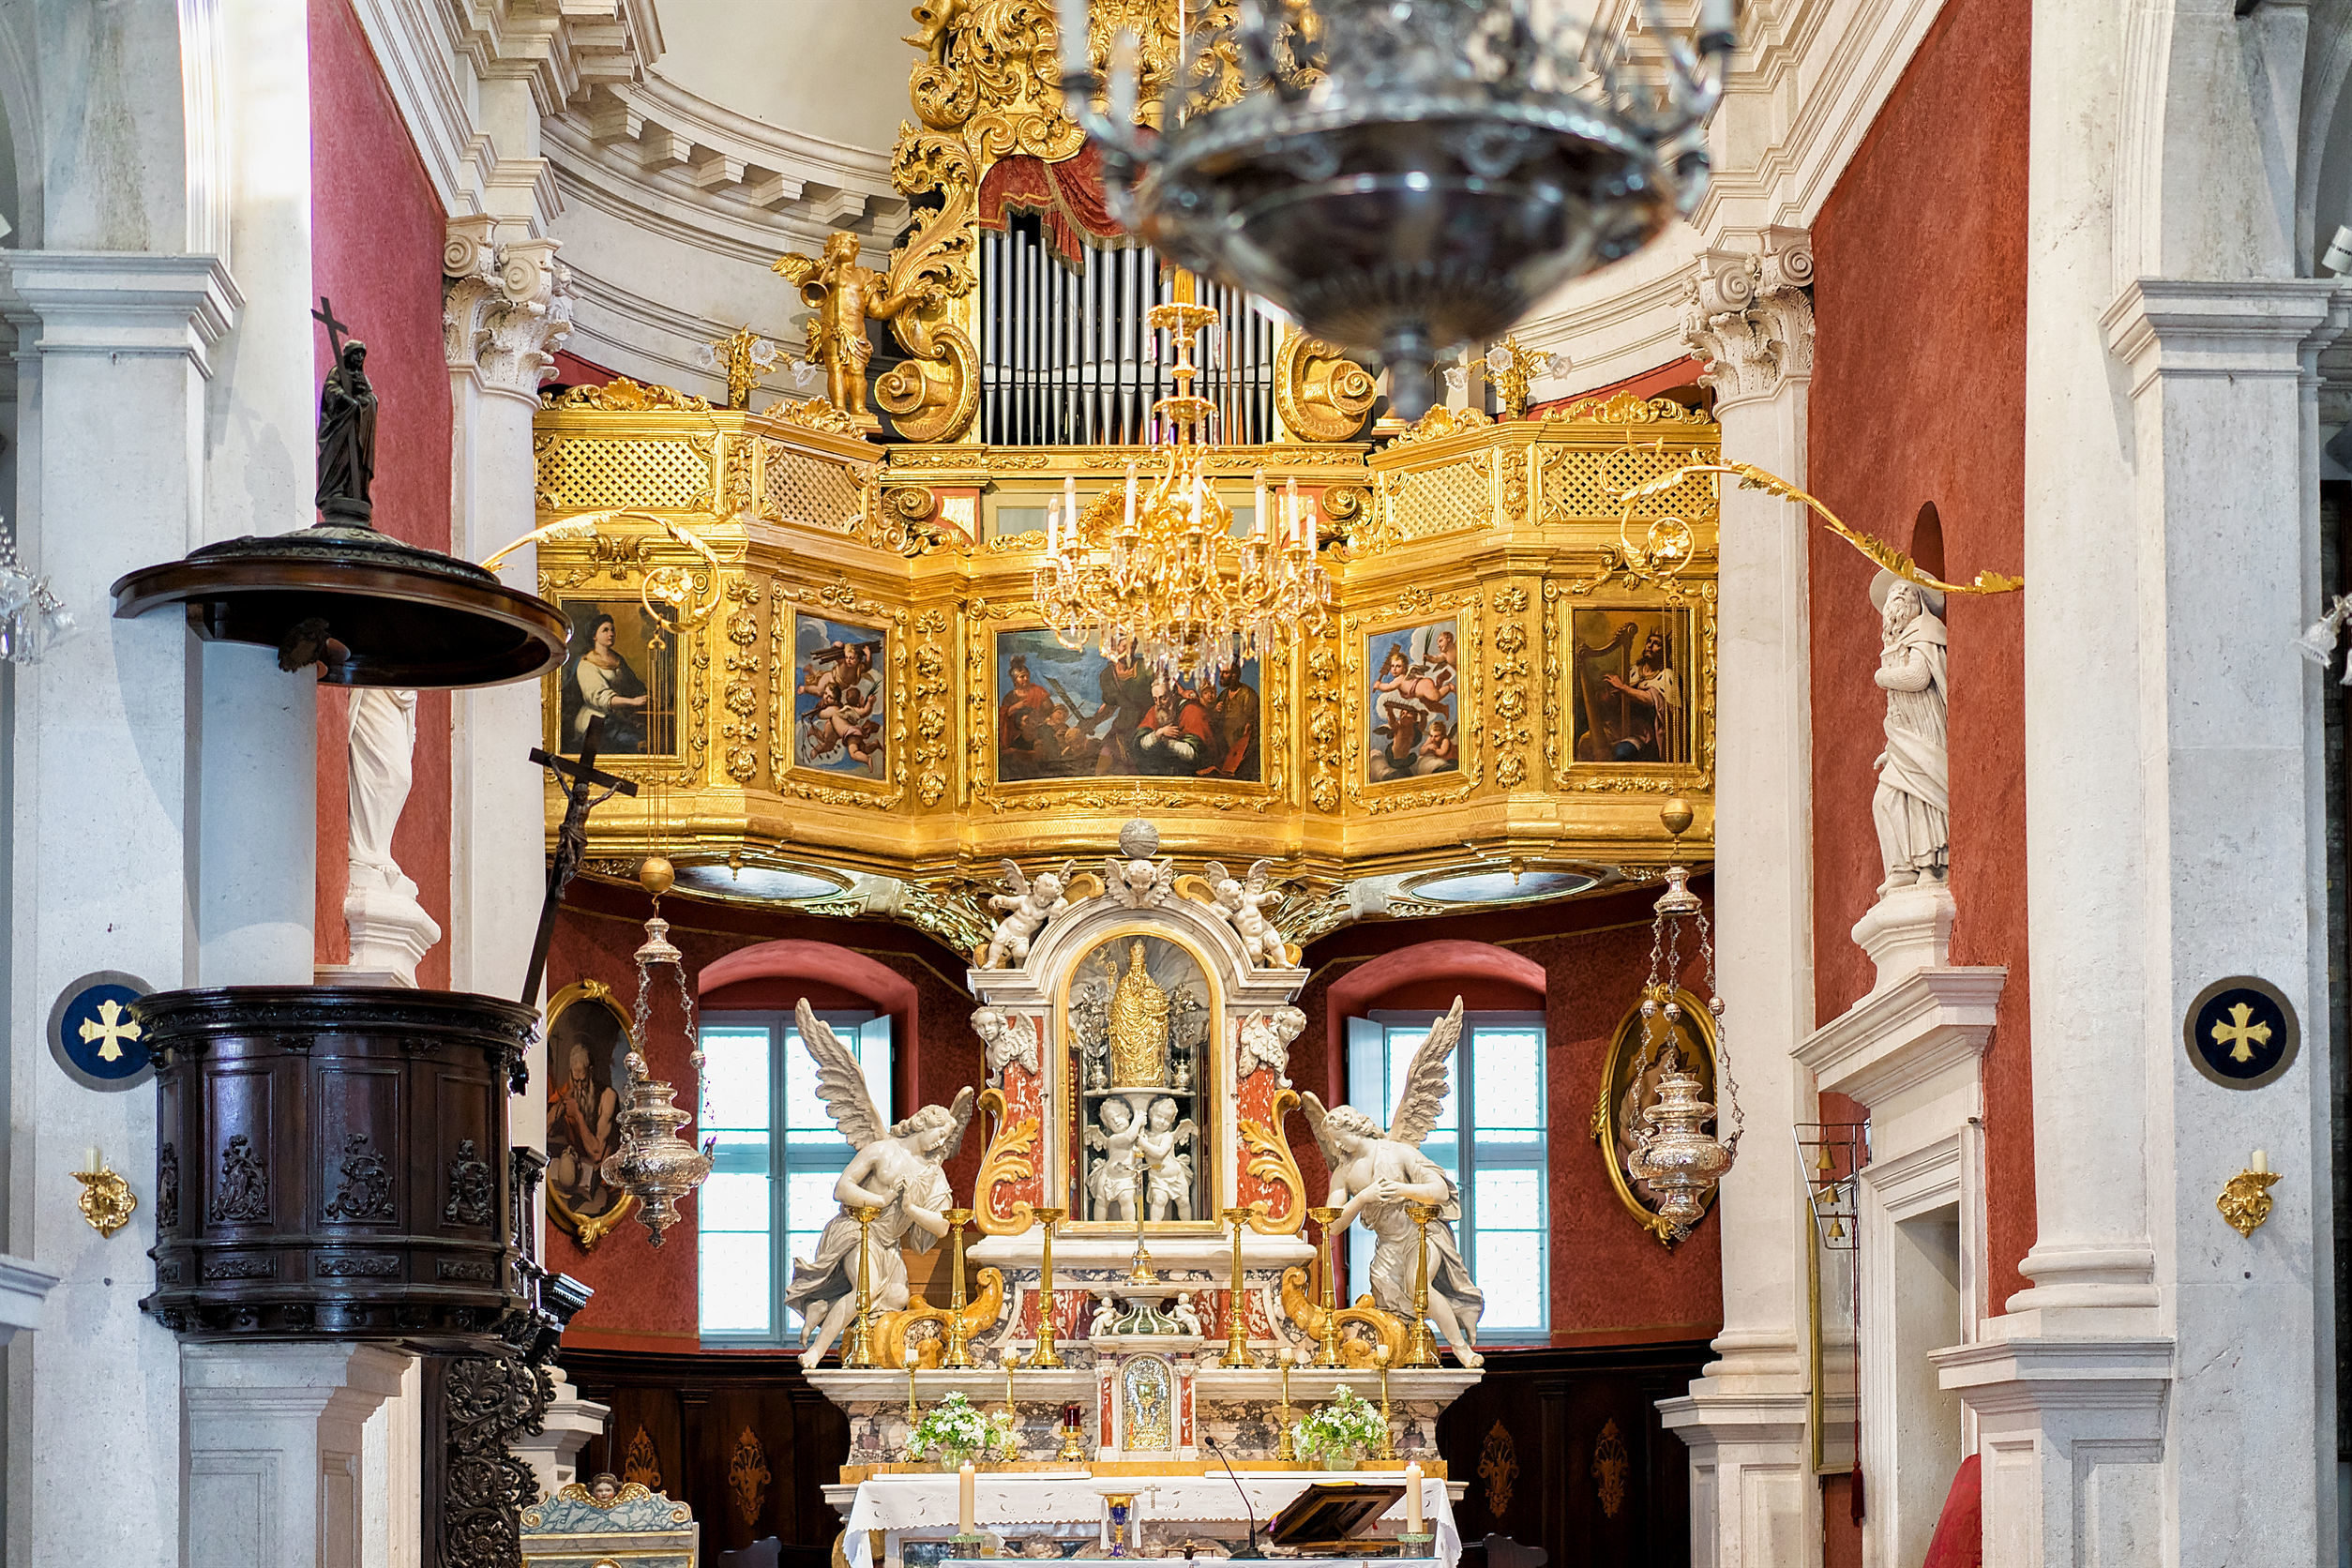 Interior of St Blaise Church in Dubrovnik